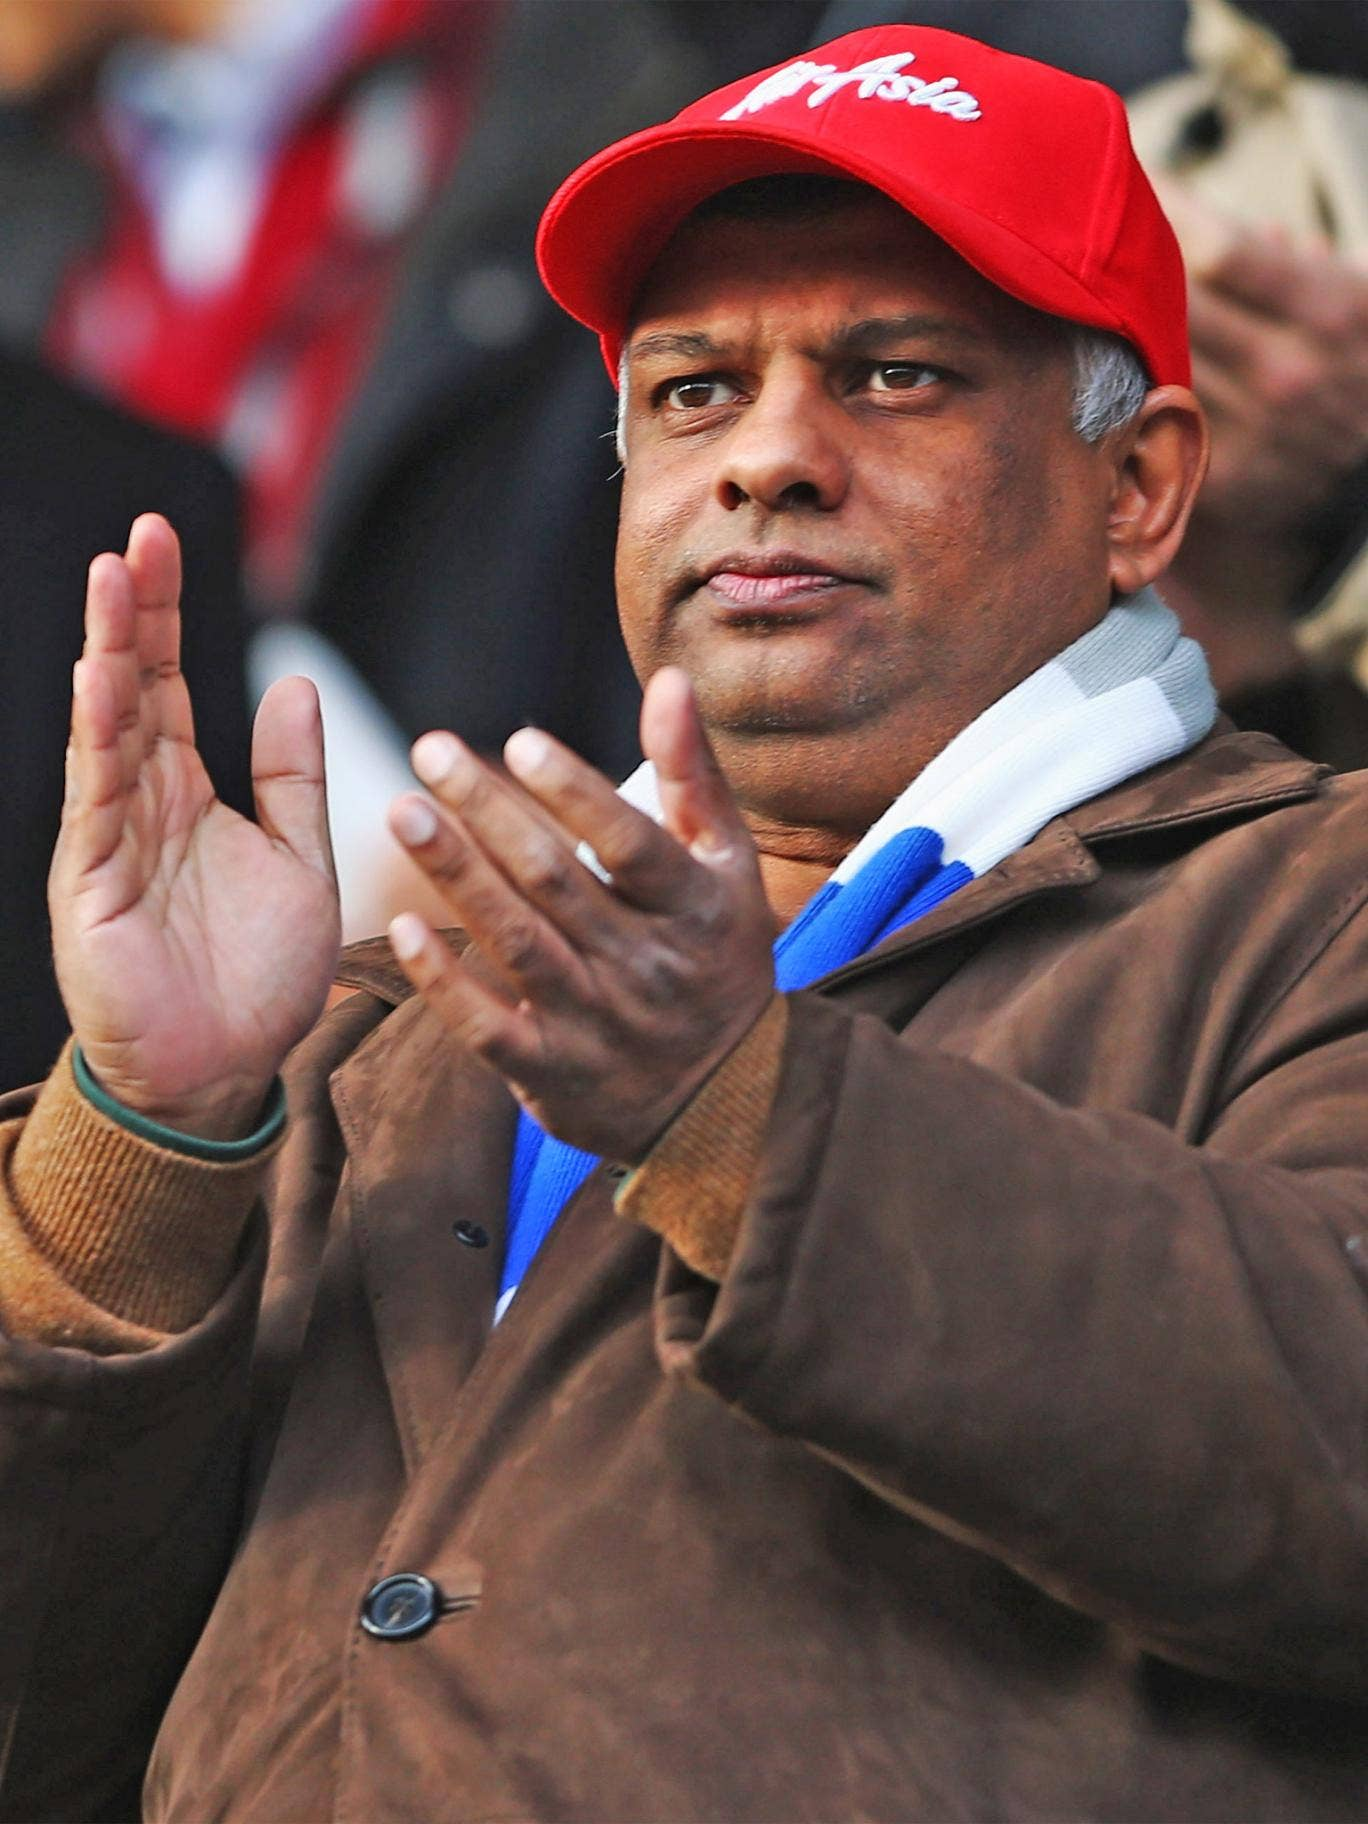 Tony Fernandes said his aim was to establish QPR in Premier League